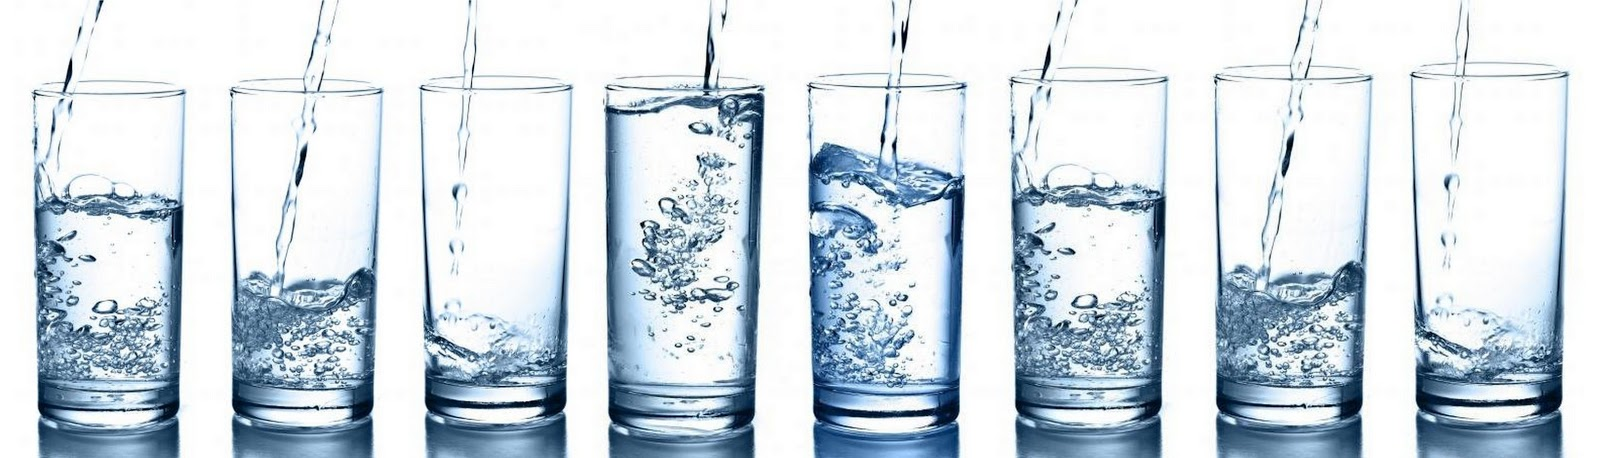 8 glasses of water a day: a myth?